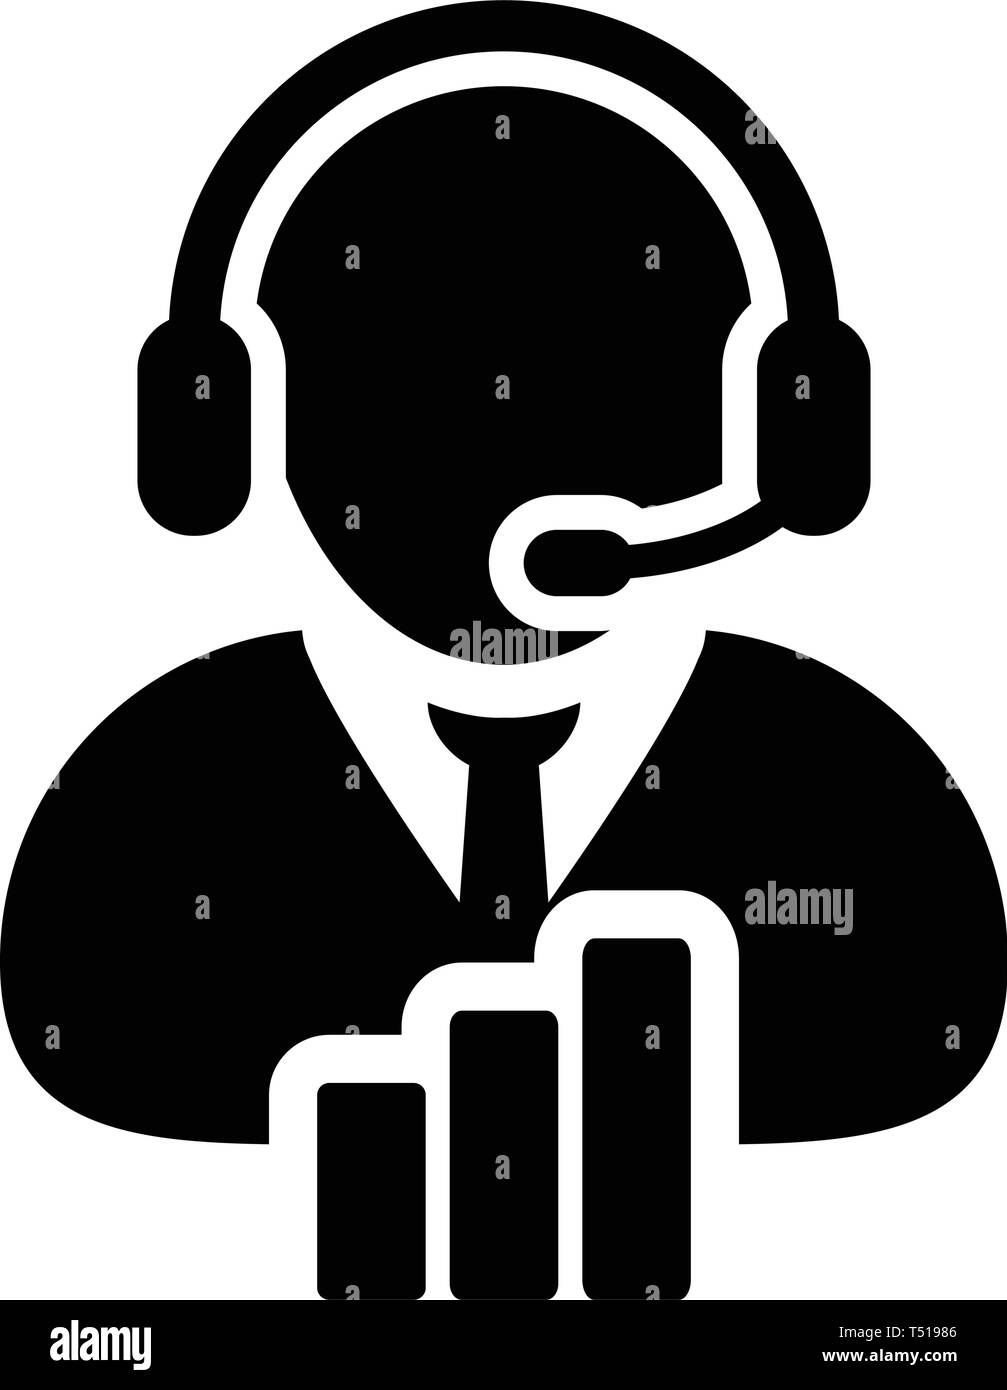 Call center icon vector male data support customer service person profile avatar with headphone and bar graph for online assistant in glyph pictogram  - Stock Image